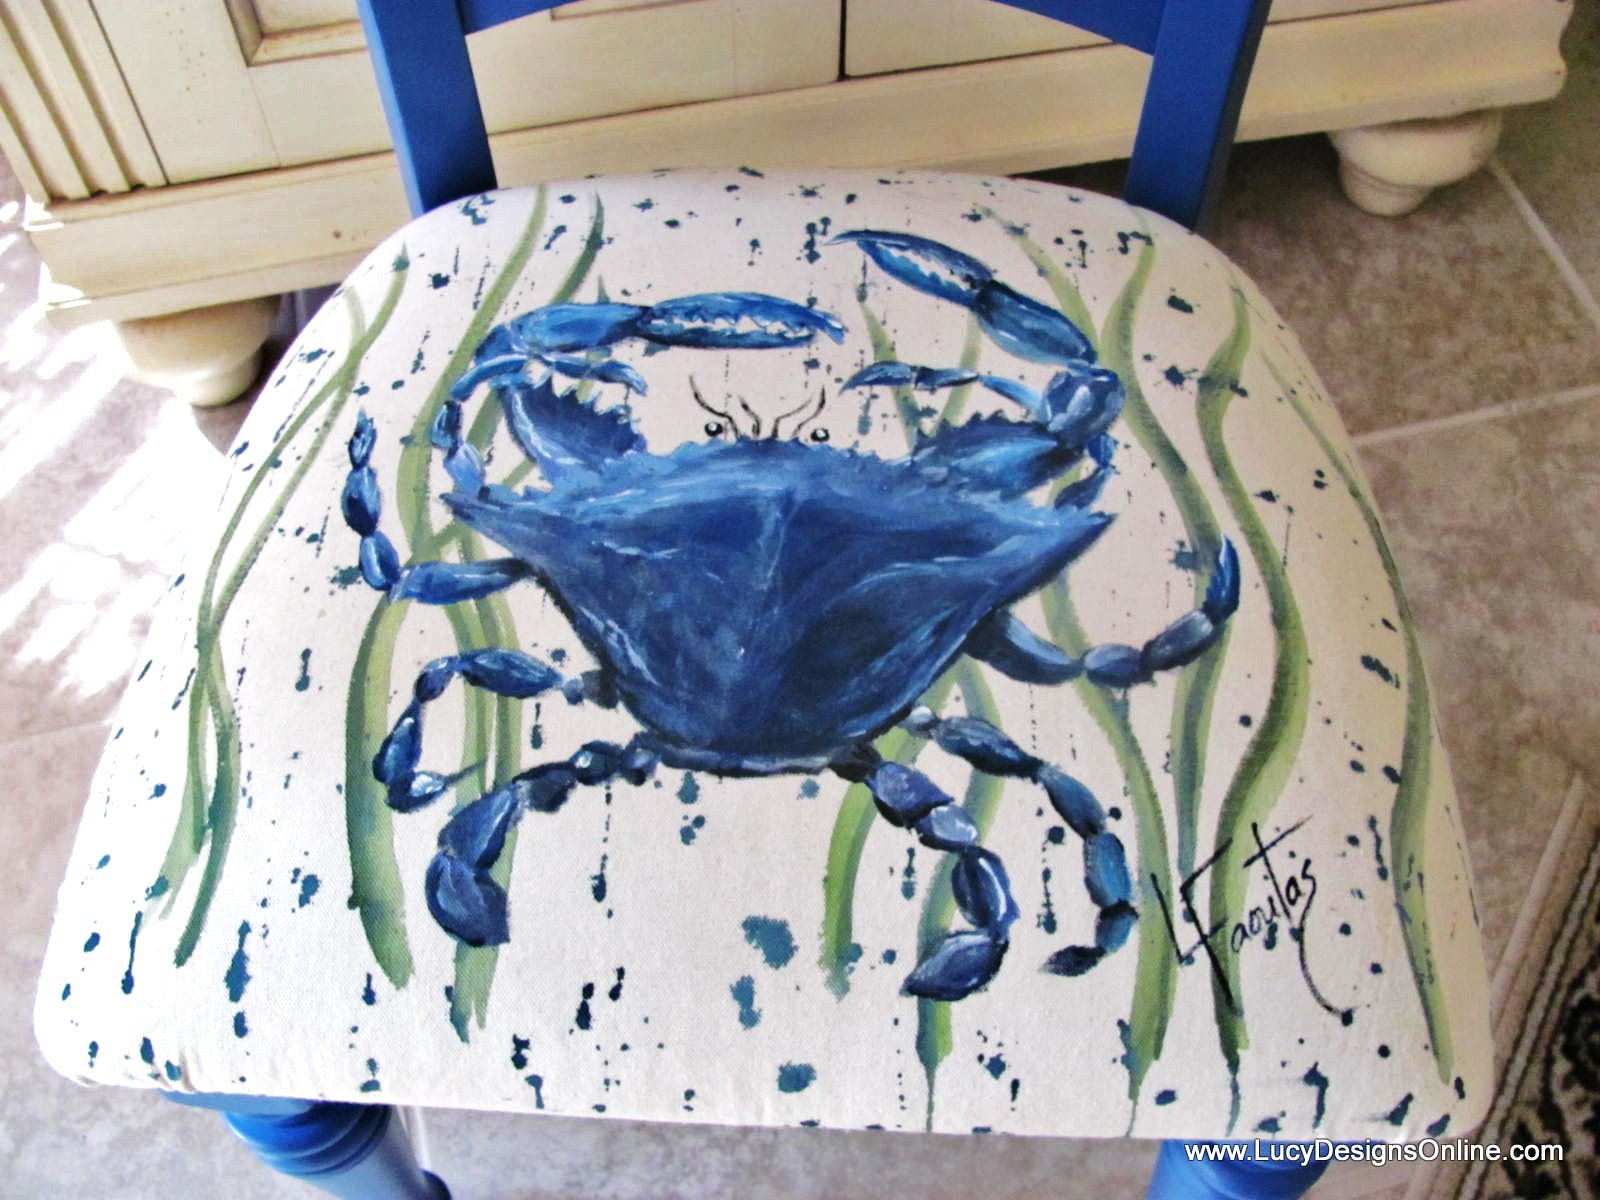 designer chair cushions. Crab Cushion DIY Designer Chair Cushions